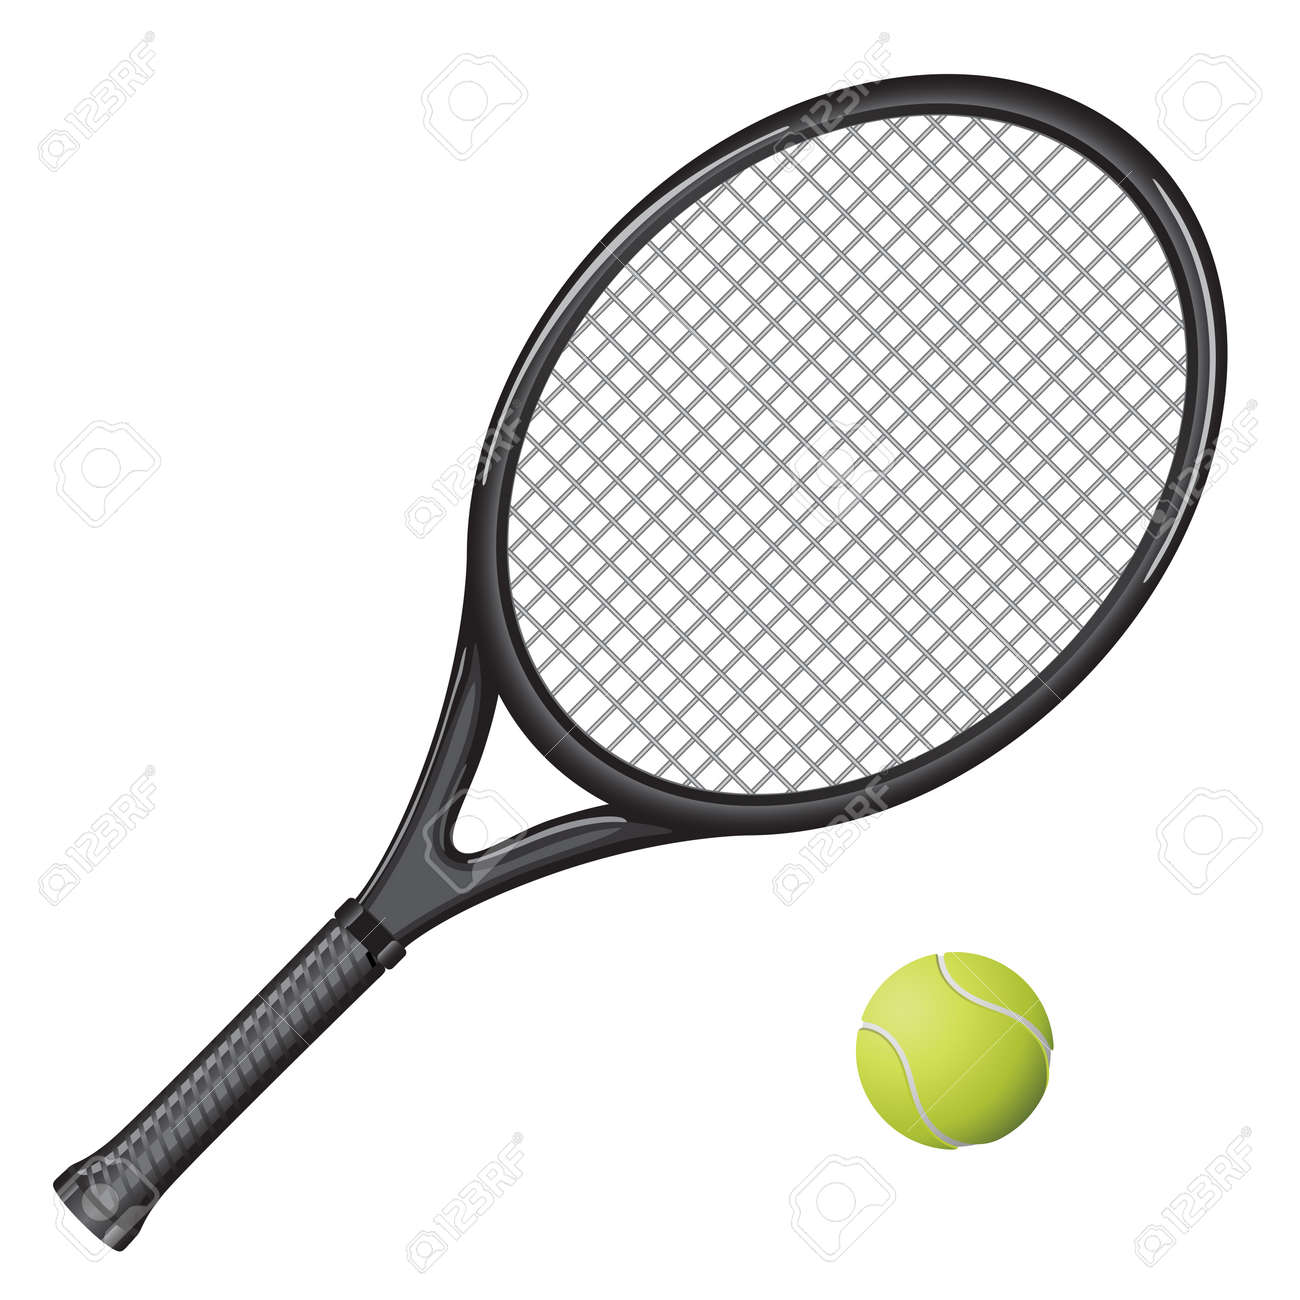 Isolated Image Of A Tennis Racket And Ball Royalty Free Cliparts Vectors And Stock Illustration Image 8951167